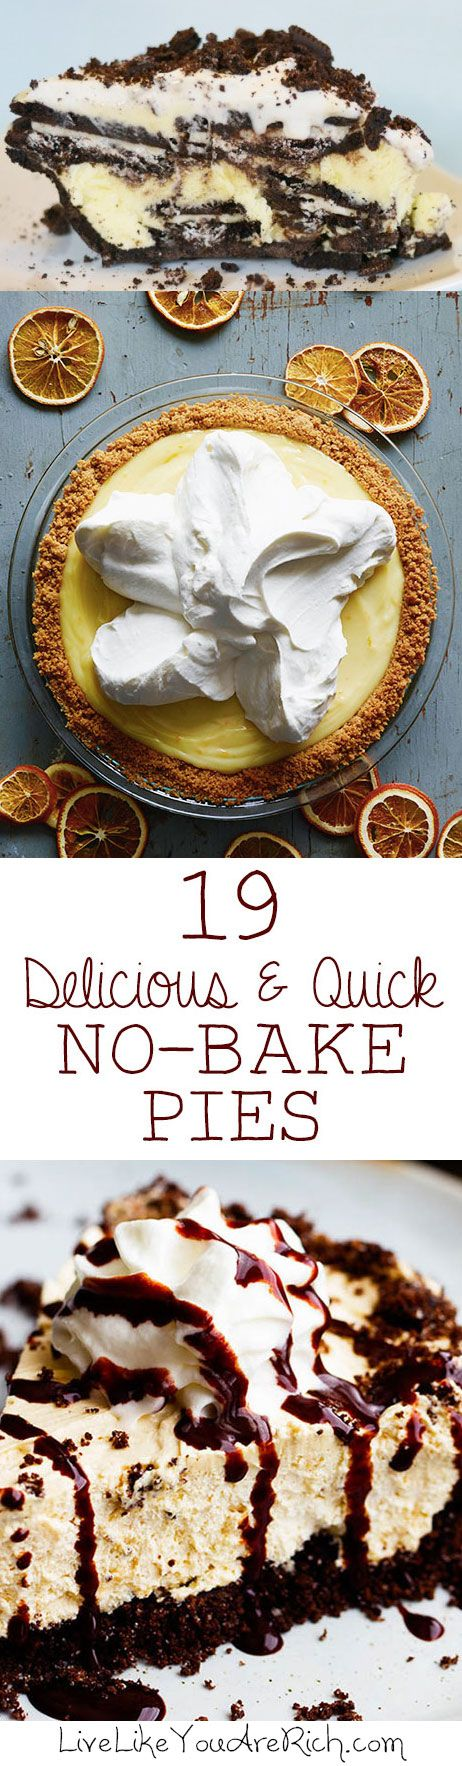 No-bake pies are so easy and quick (especially if you buy pre-made crusts). They can be thrown together in just a few minutes of prep and a few hours of chilling. They are a great idea for contributing to a party, potluck, or dinner. #LiveLikeYouAreRich